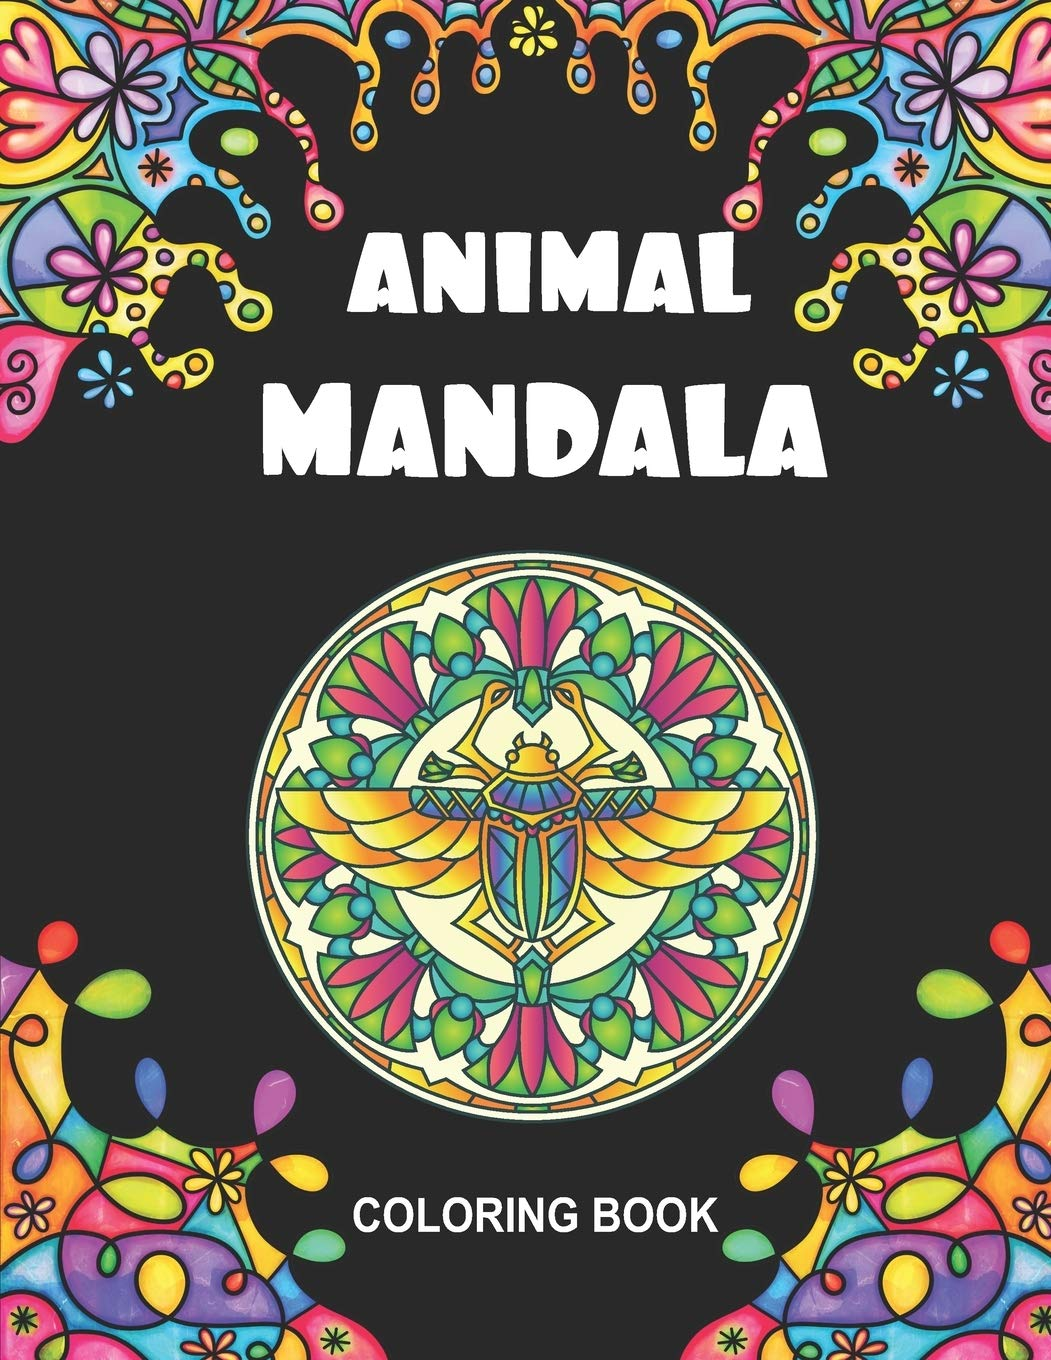 Amazon Com Animal Mandala Coloring Book 50 Zentangle Coloring Book For Kids And Adults Chicken Lion Lama Turtle And More For Stress Relief 9798695970258 Gaylord Roxanne Books